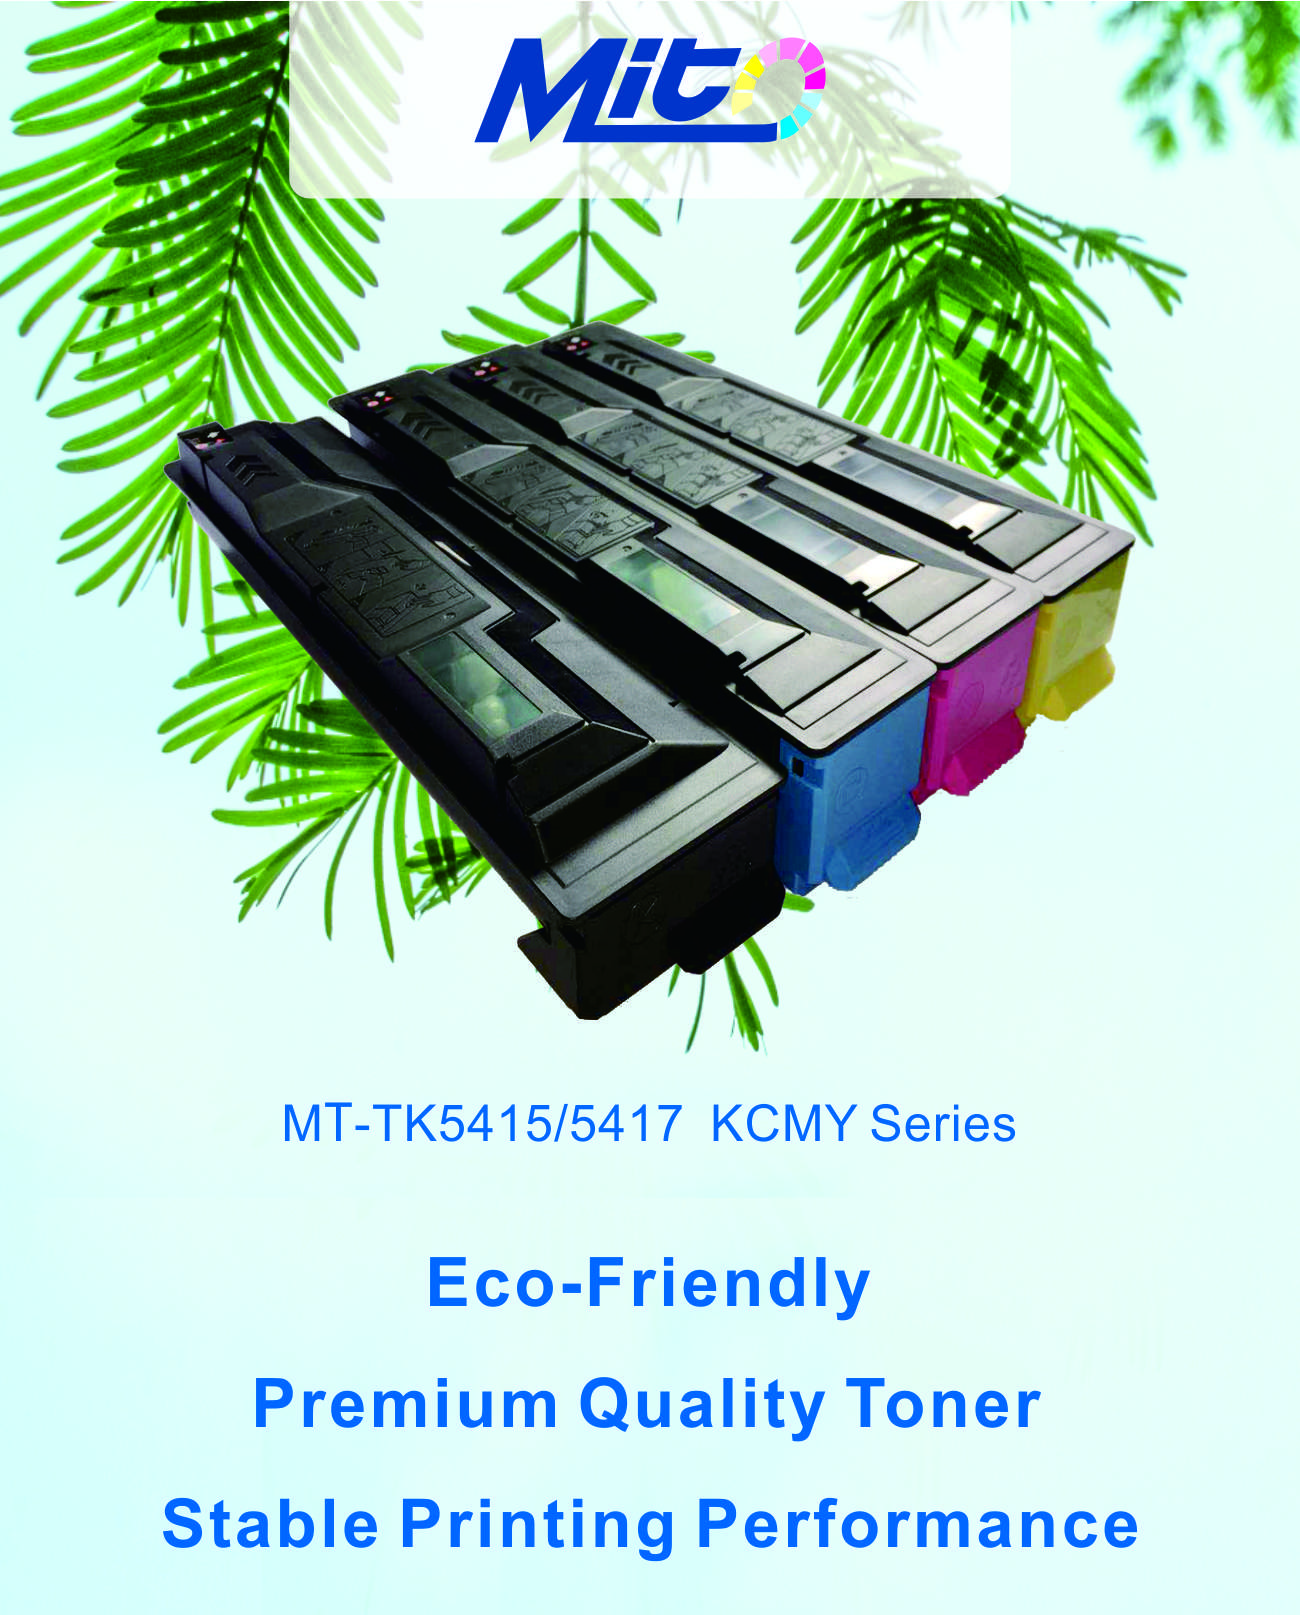 Mito Replacement Products for MT-TK5315 5317KCMY Series